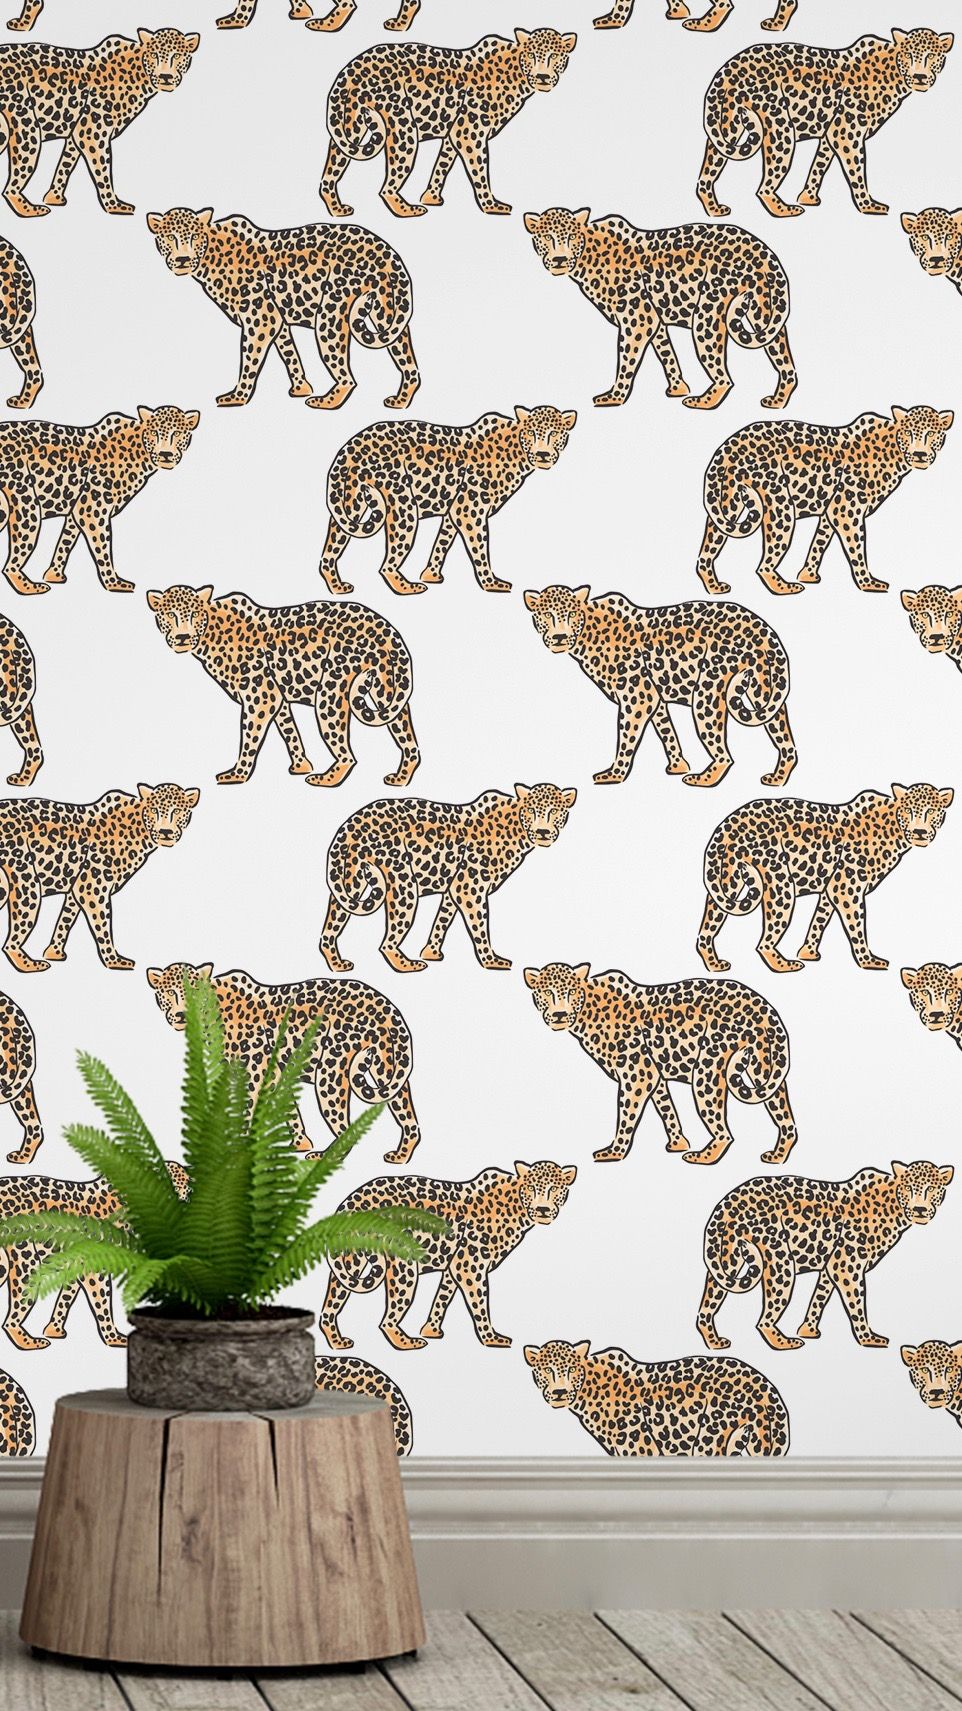 This leopard wallpaper is fabulous! It is removable self